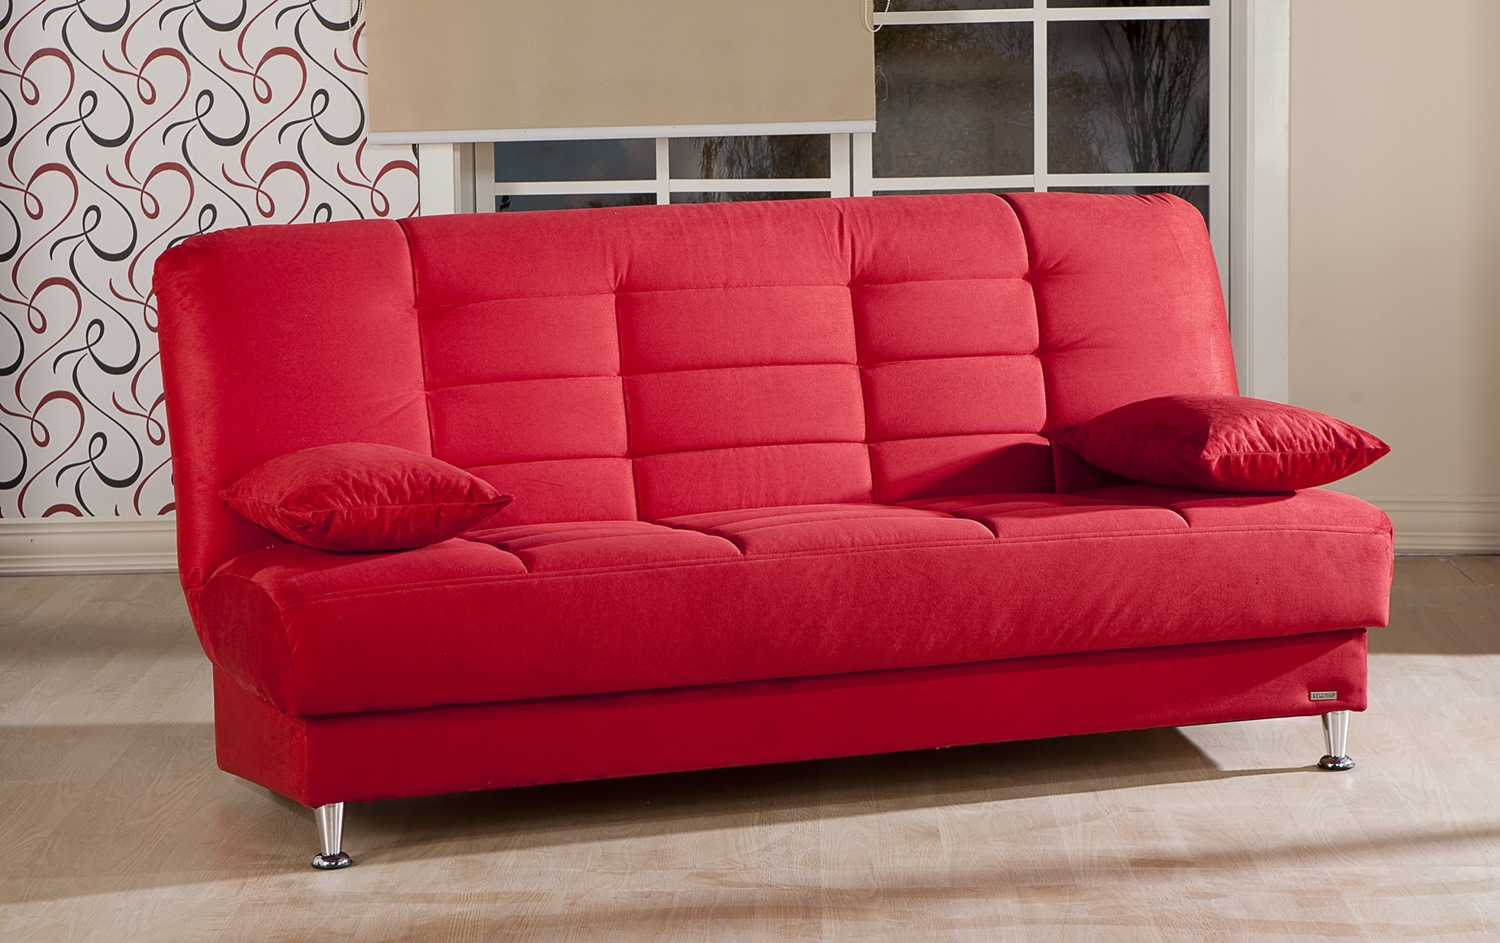 Sale More Functional Sofas Futons Vegas Convertible Sleeper Sofa Rainbow Red